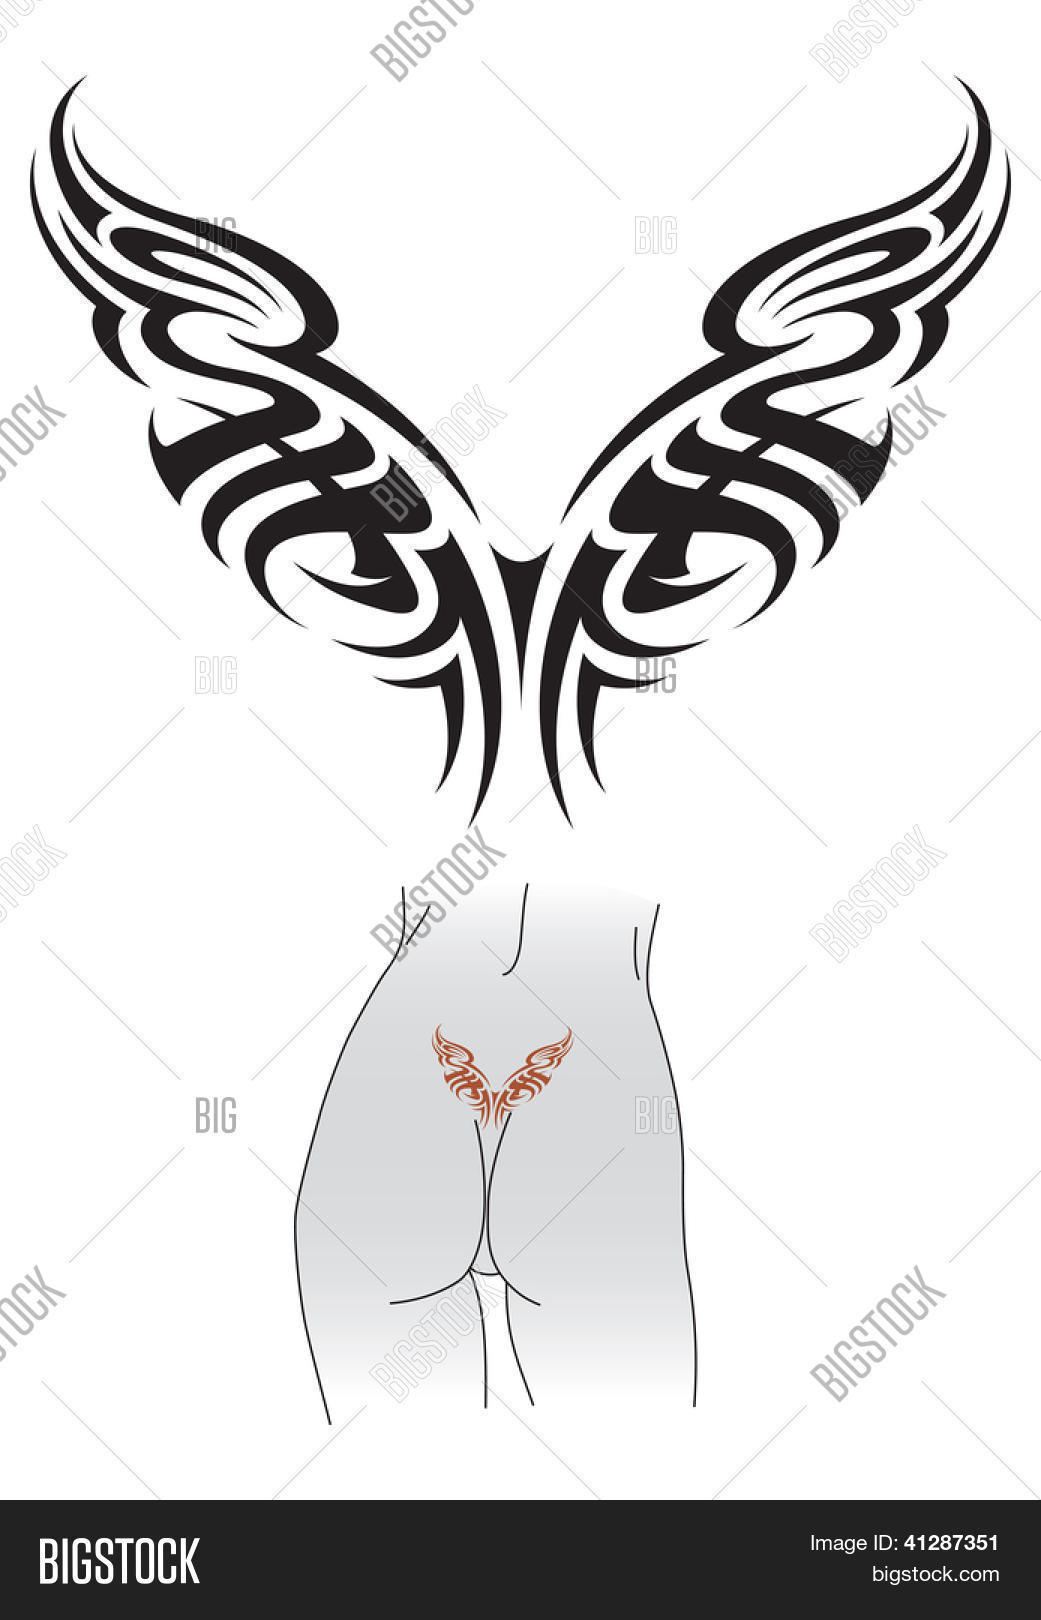 Tribal Styled Tattoo Image Photo Free Trial Bigstock